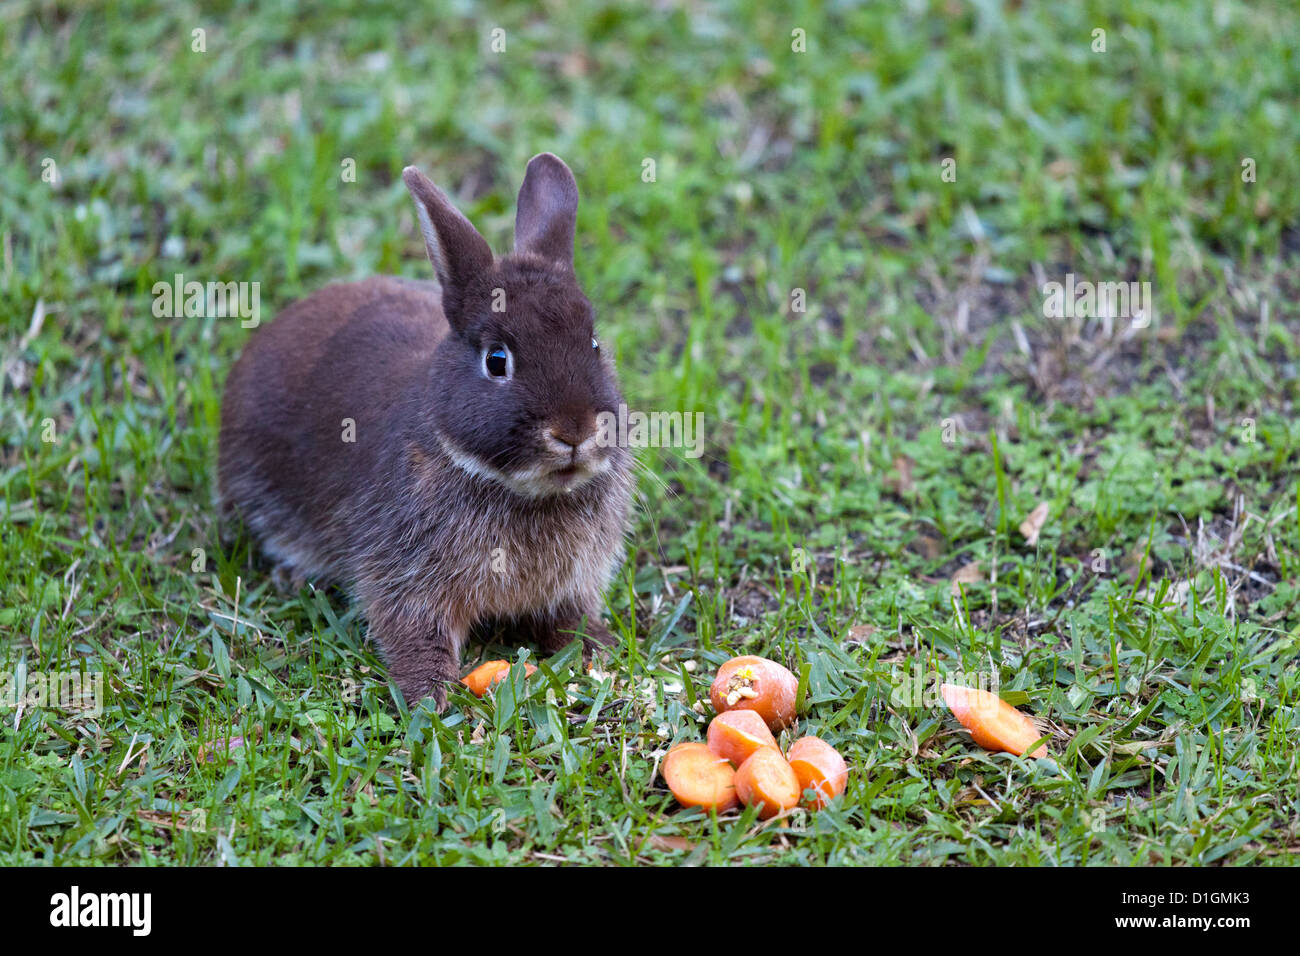 The meal of a tamed dwarf rabbit (Oryctolagus cuniculus) living in relative liberty.  Le repas d'un lapin nain apprivoisé. Stock Photo